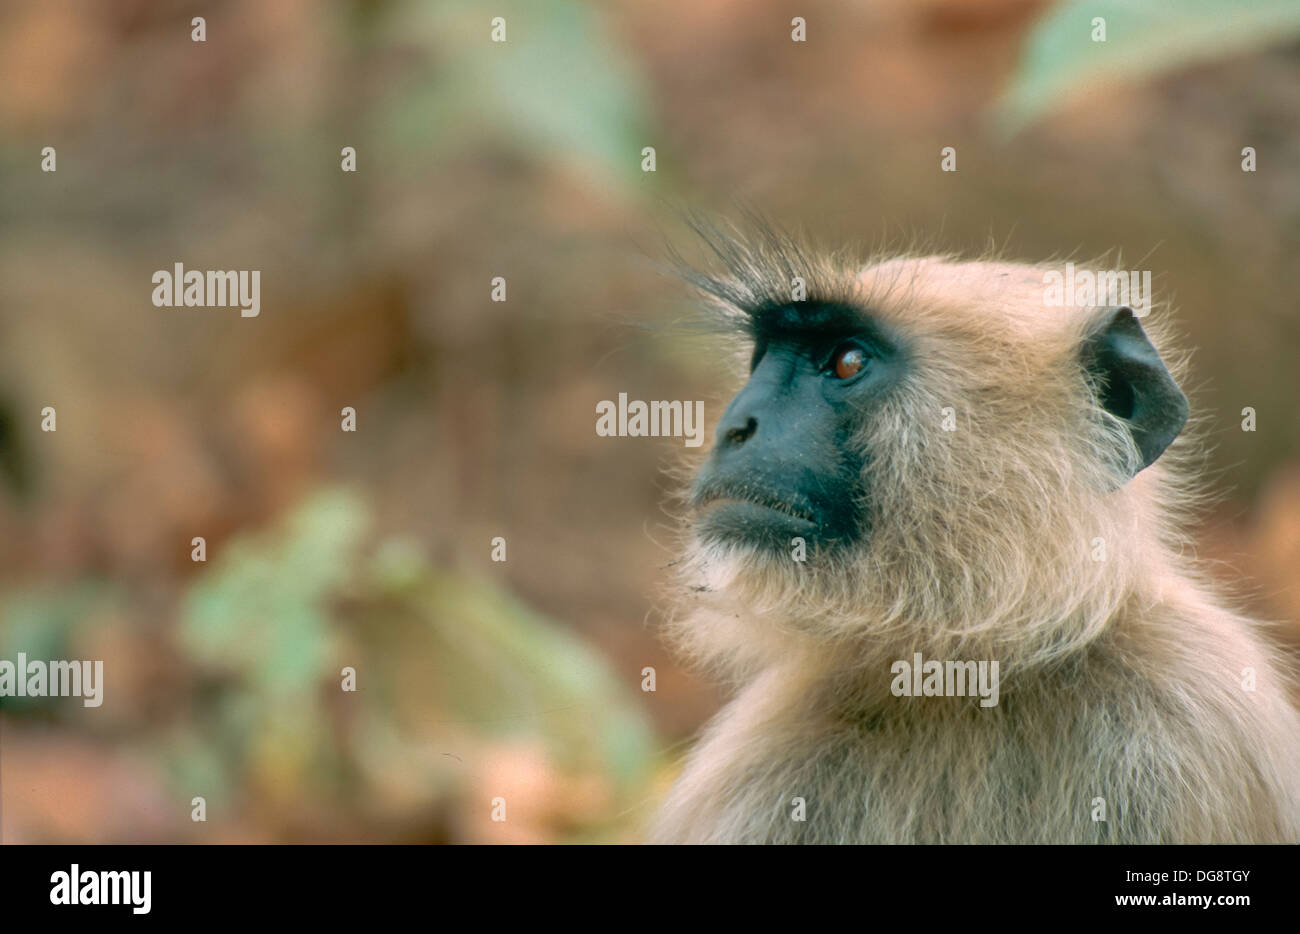 Langur observer. Bandavgarh National Park. State of Madhya Pradesh. India. - Stock Image